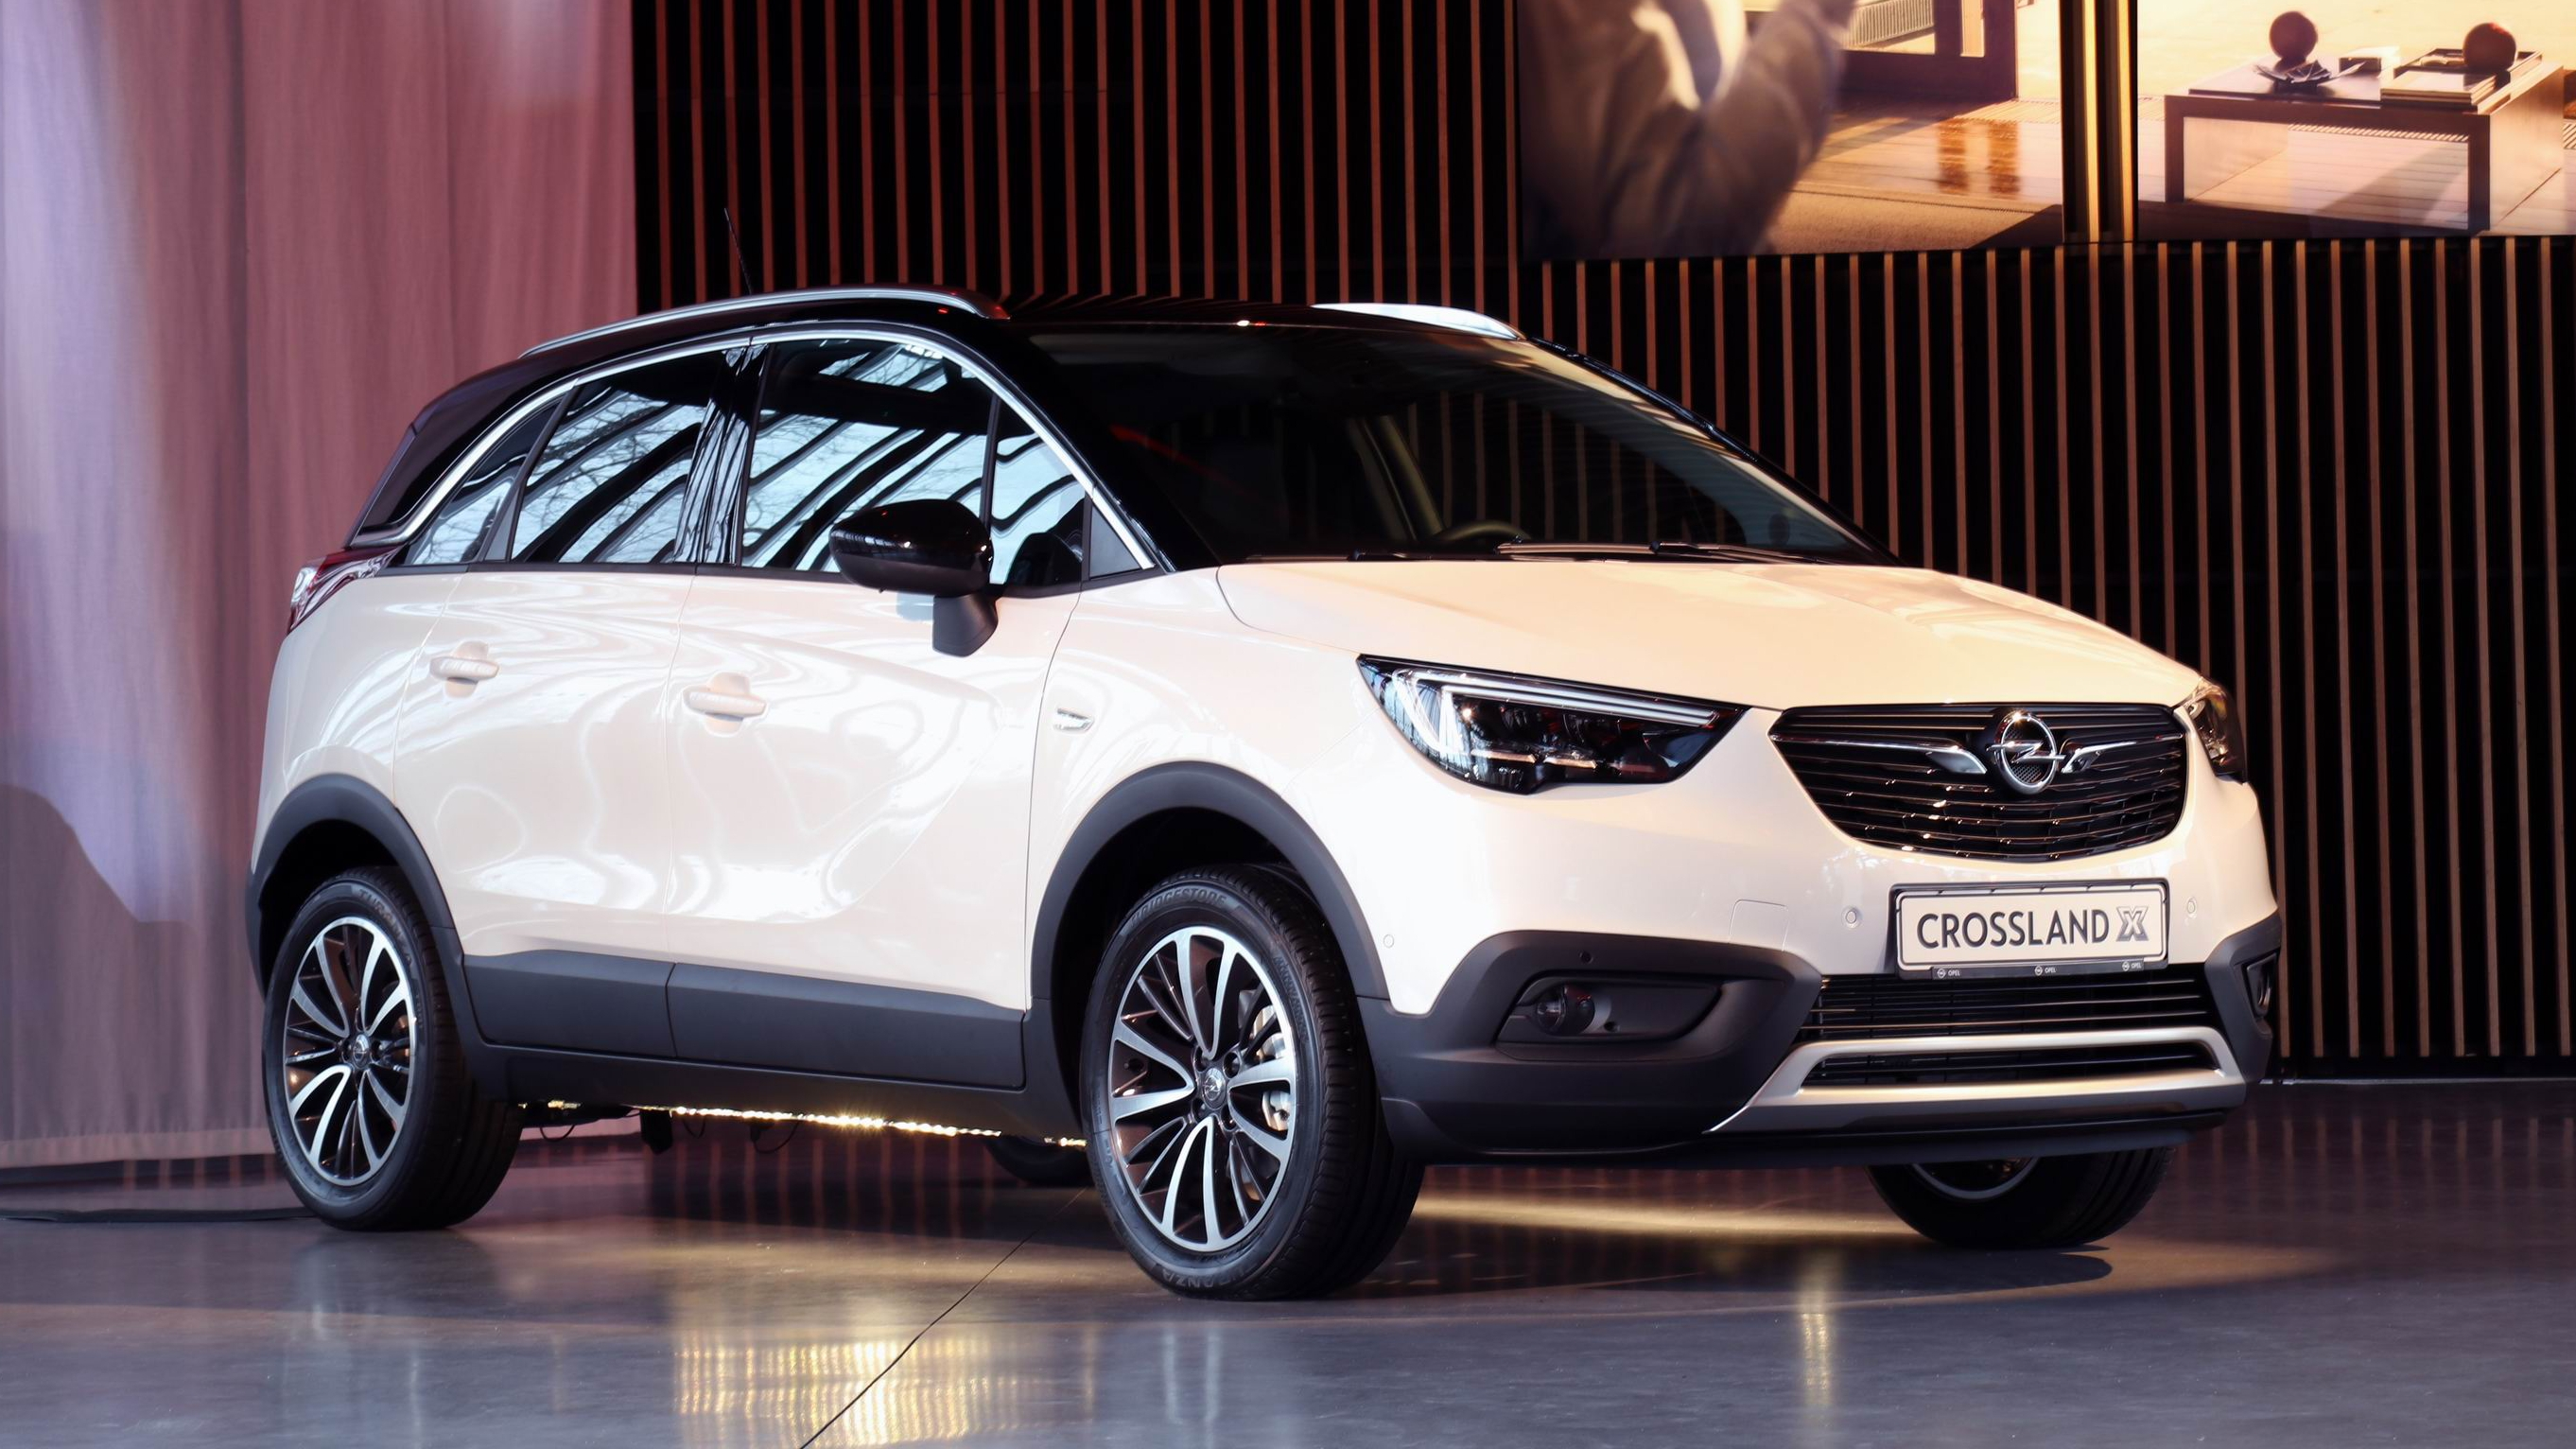 salon de gen ve 2017 opel crossland x le changement c. Black Bedroom Furniture Sets. Home Design Ideas